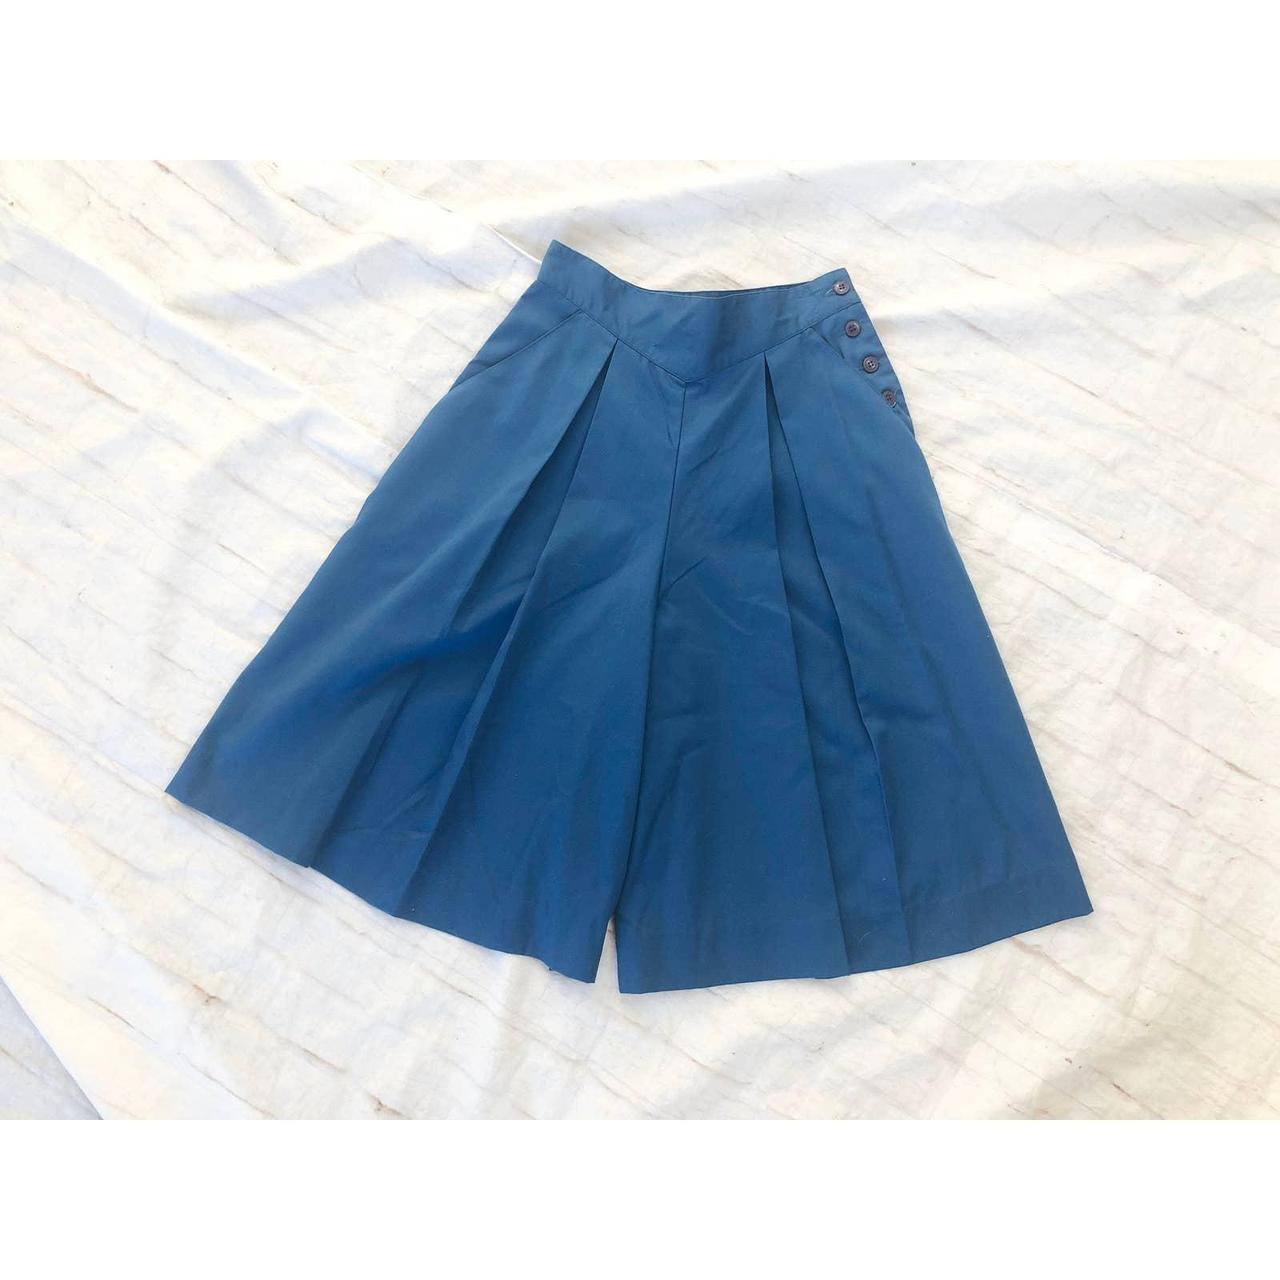 Product Image 1 - Vintage culottes from the 1980s